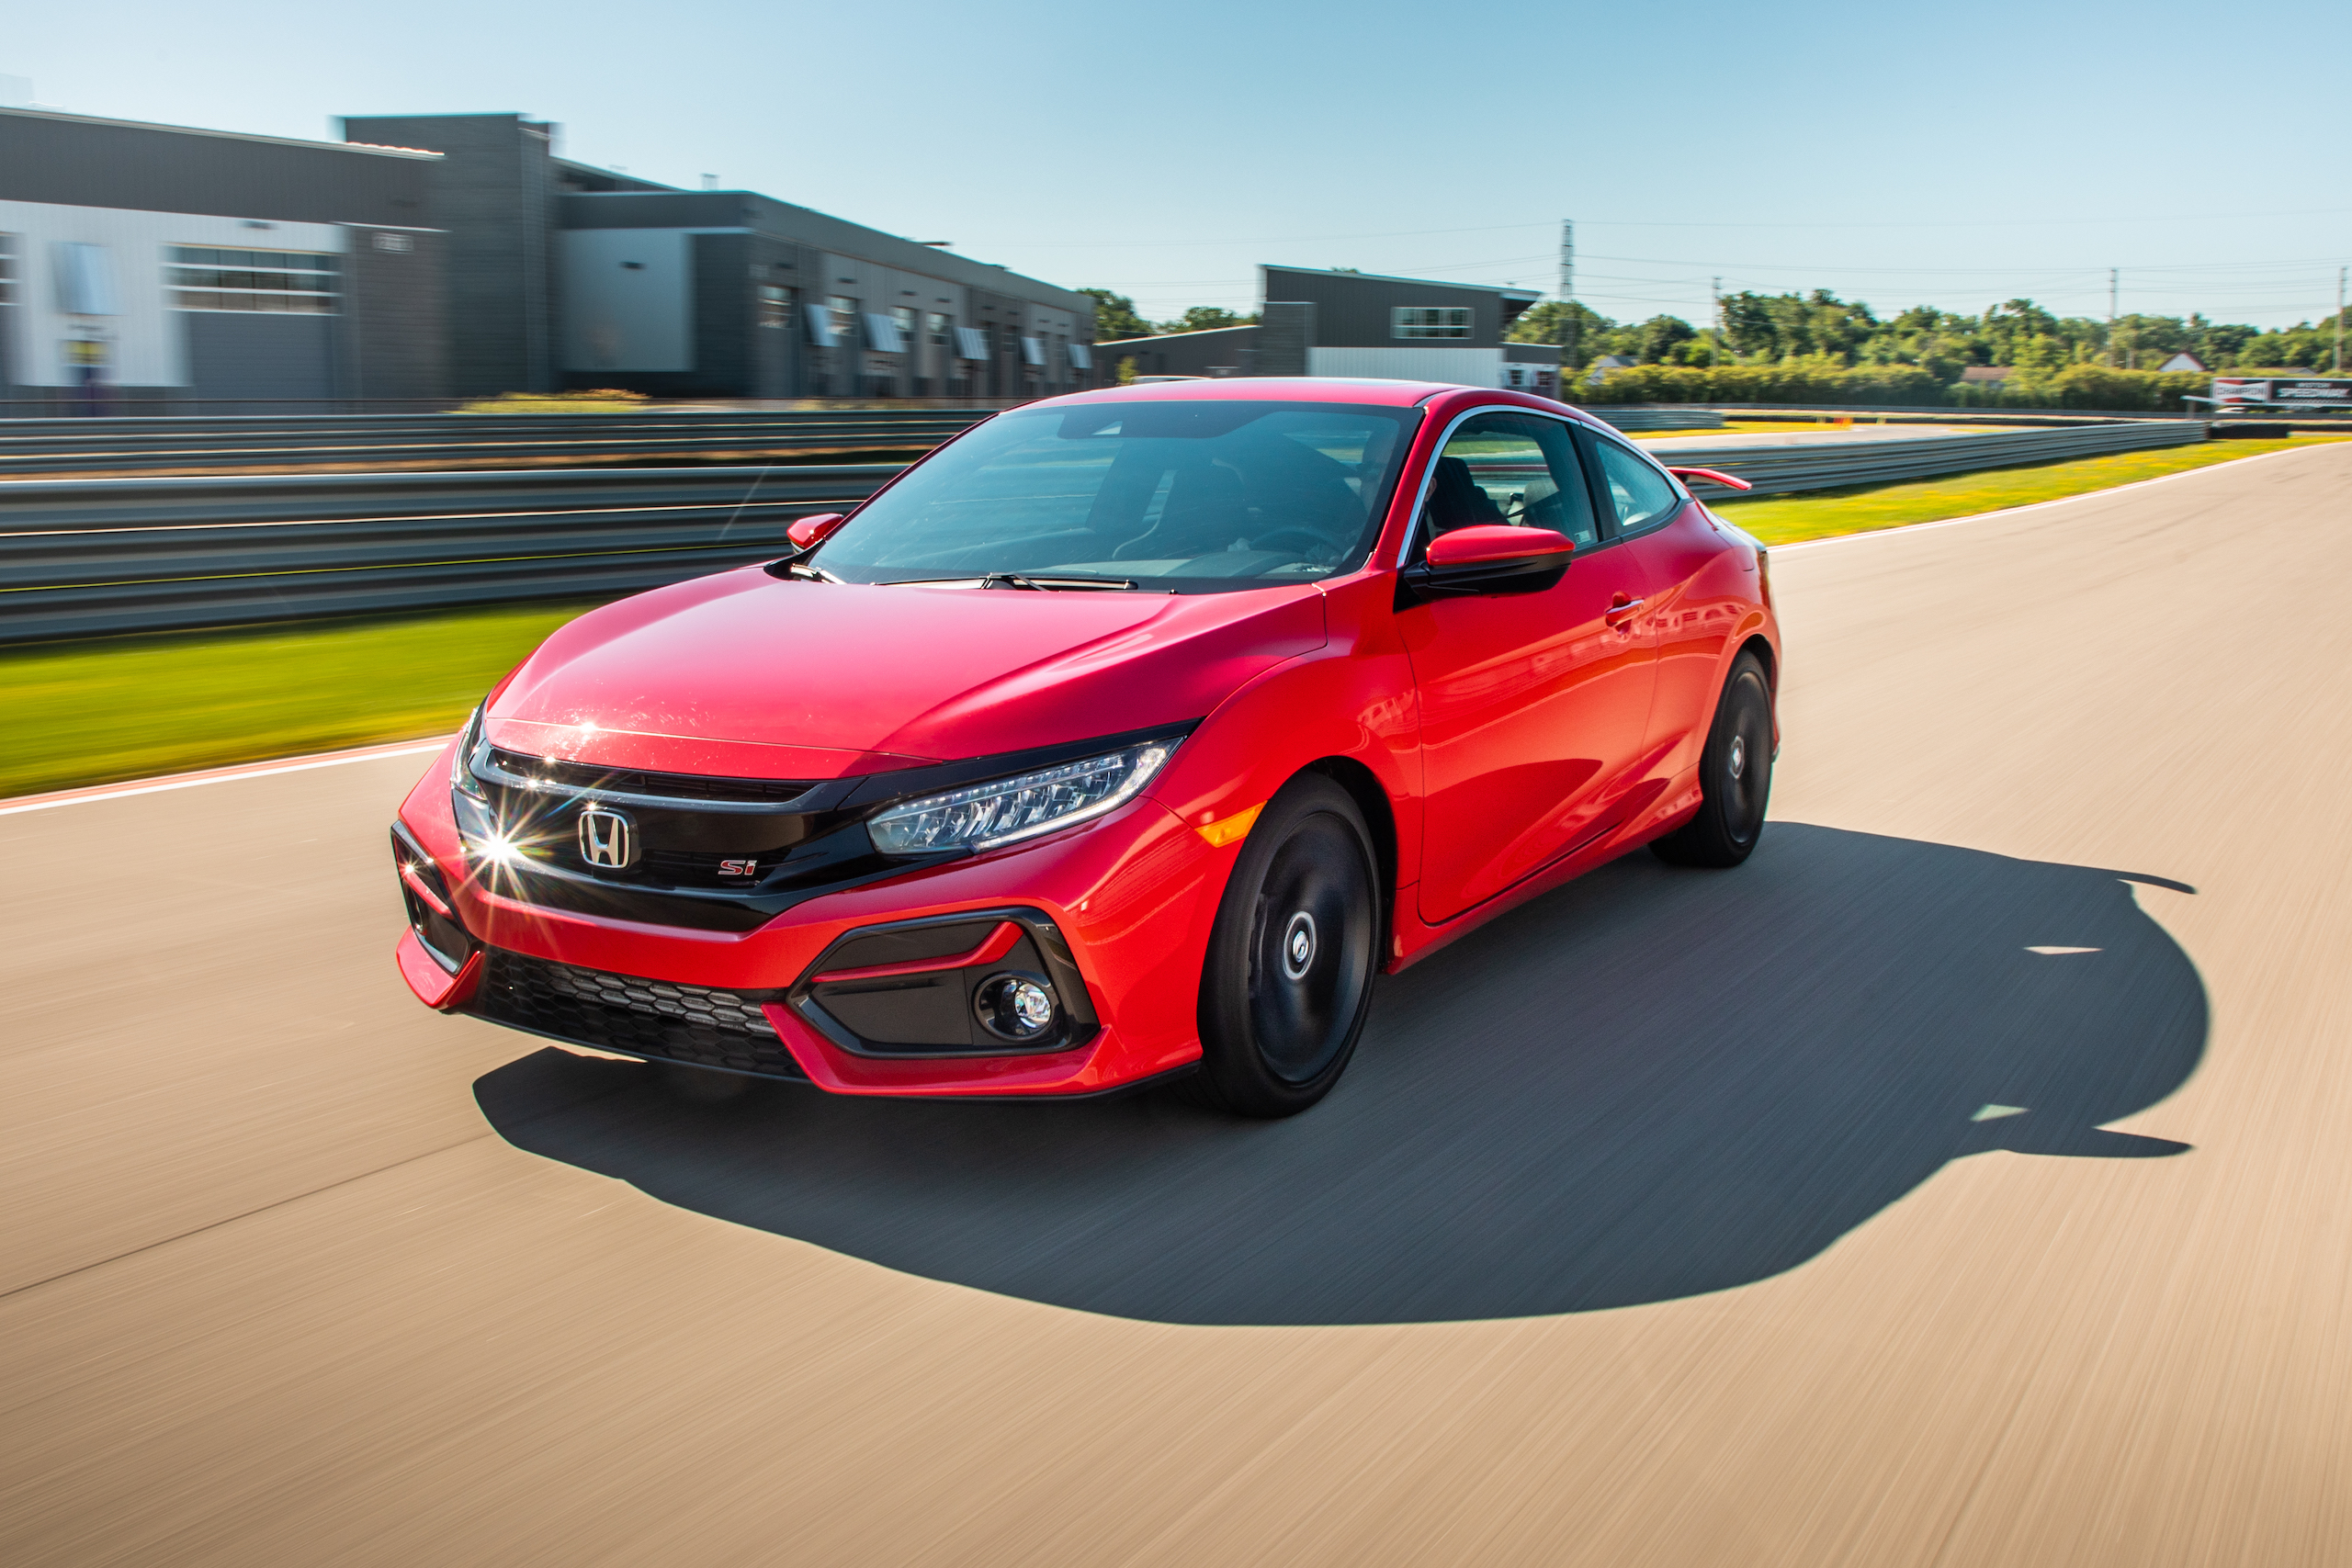 2020 Civic Si front three-quarter track action